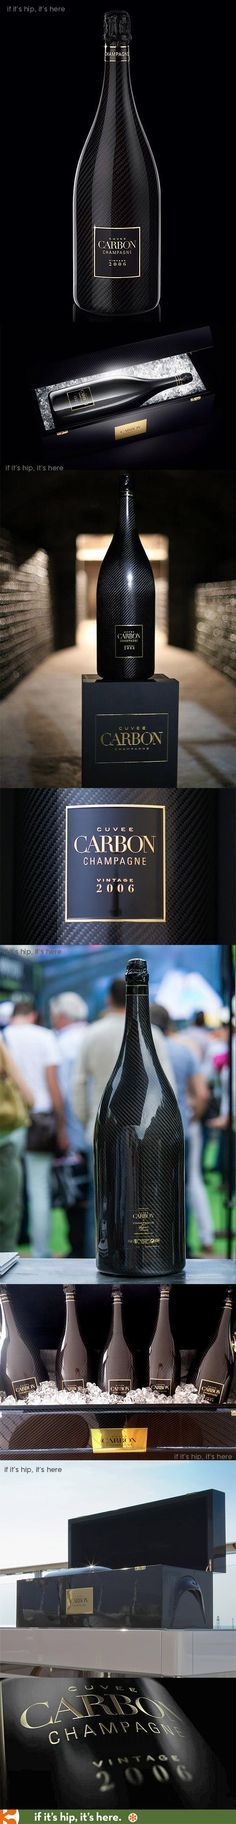 The House of Devavry's elegant and luxurious Carbon Cuvée Champagne is a bit of bubbly clad in a carbon fiber wrapped bottle for $3000 a pop. PD